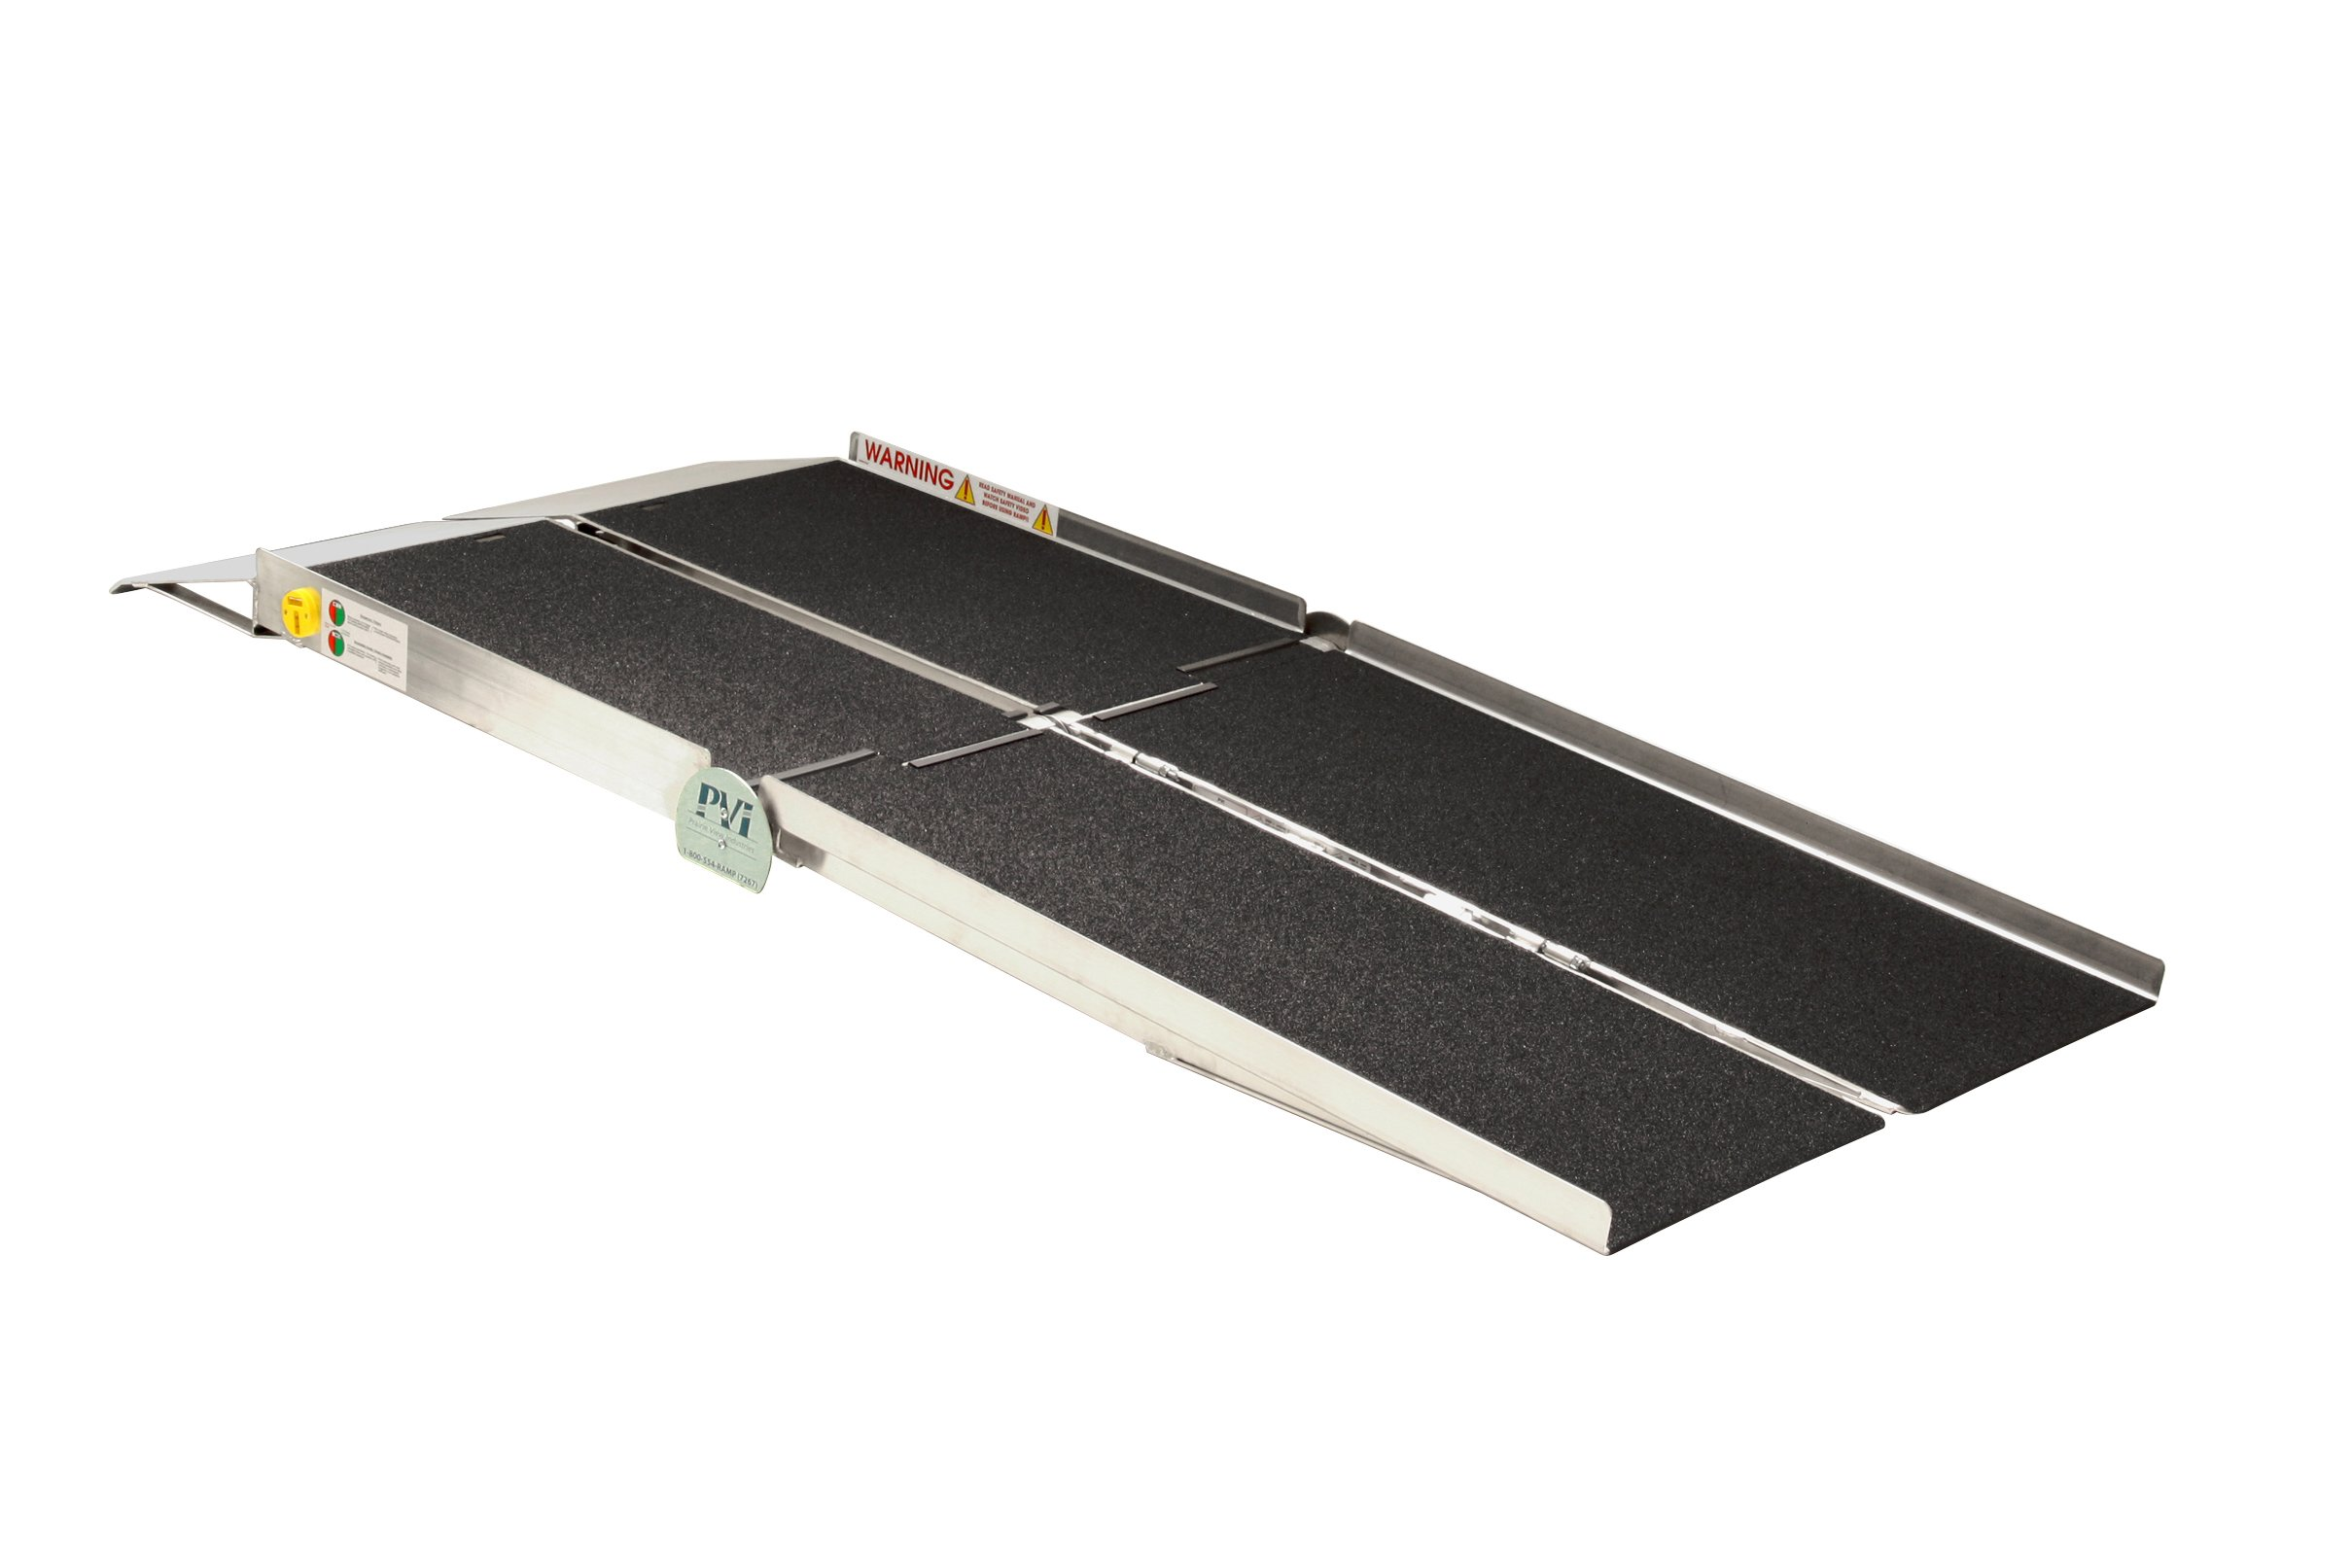 Prairie View Industries UTW830 Portable Multi-fold Ramp with Extended Lip, 8 ft x 30 in by Prairie View Industries